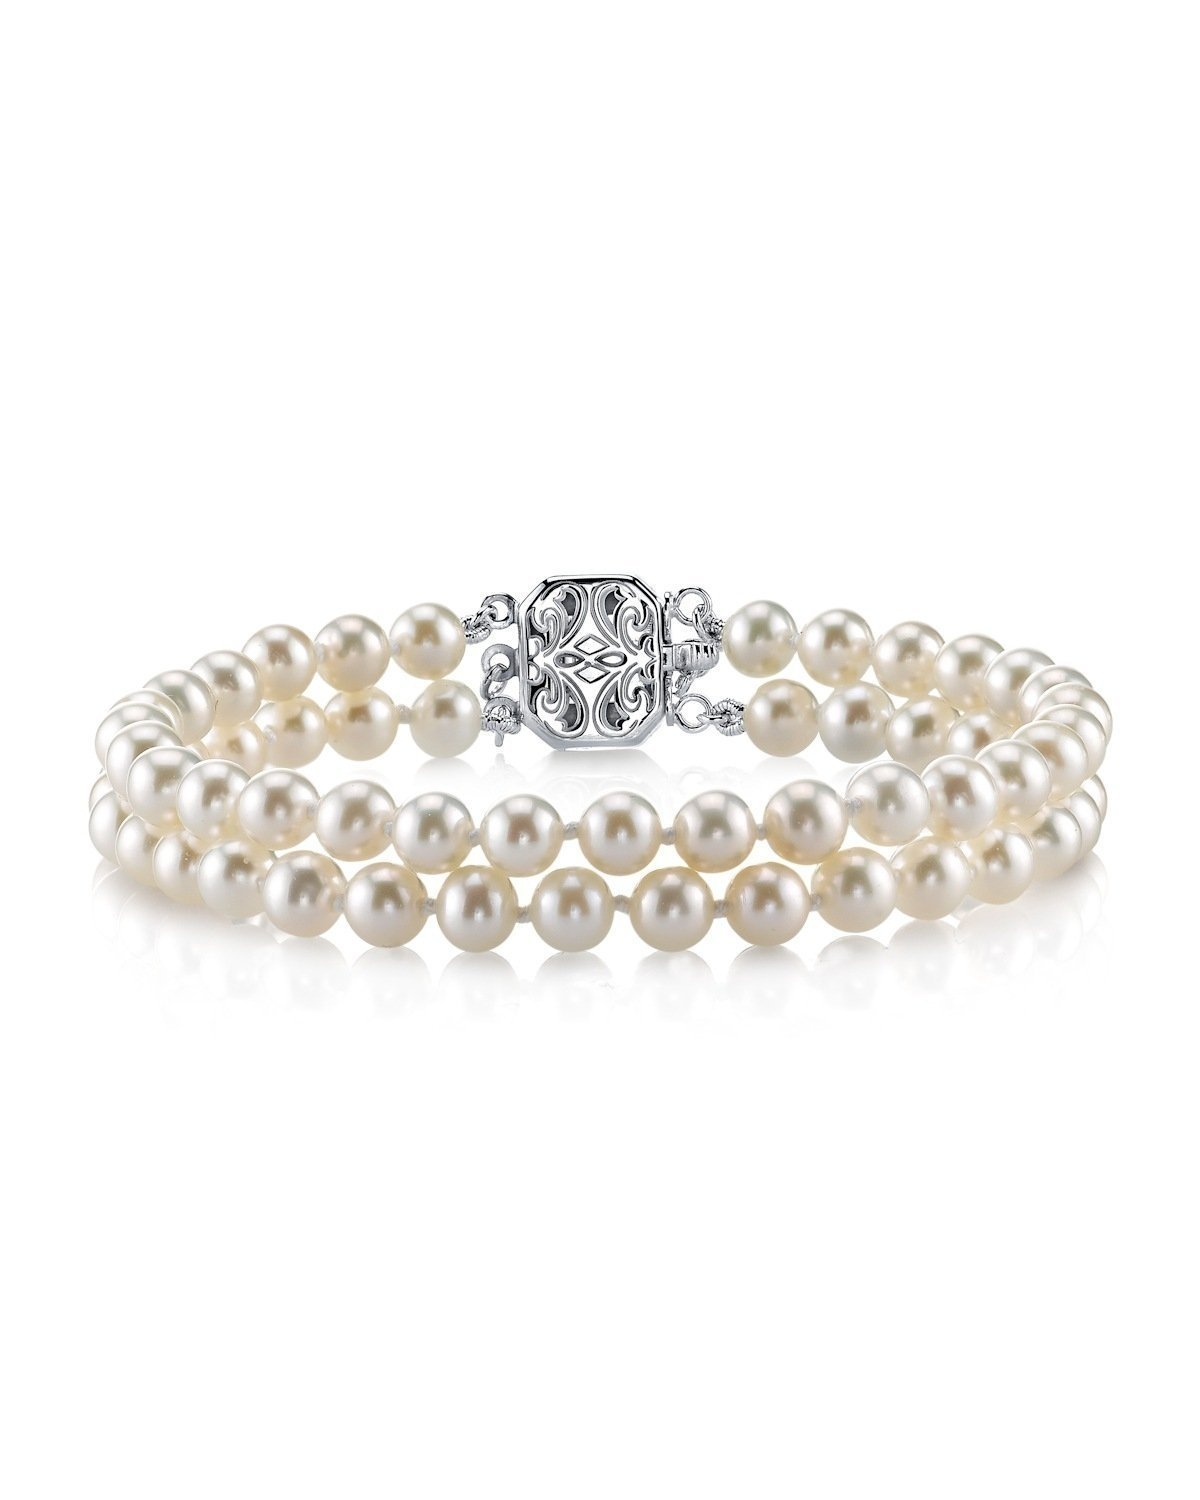 7.0-7.5mm White Freshwater Cultured Pearl Double Strand Bracelet - AAAA Quality